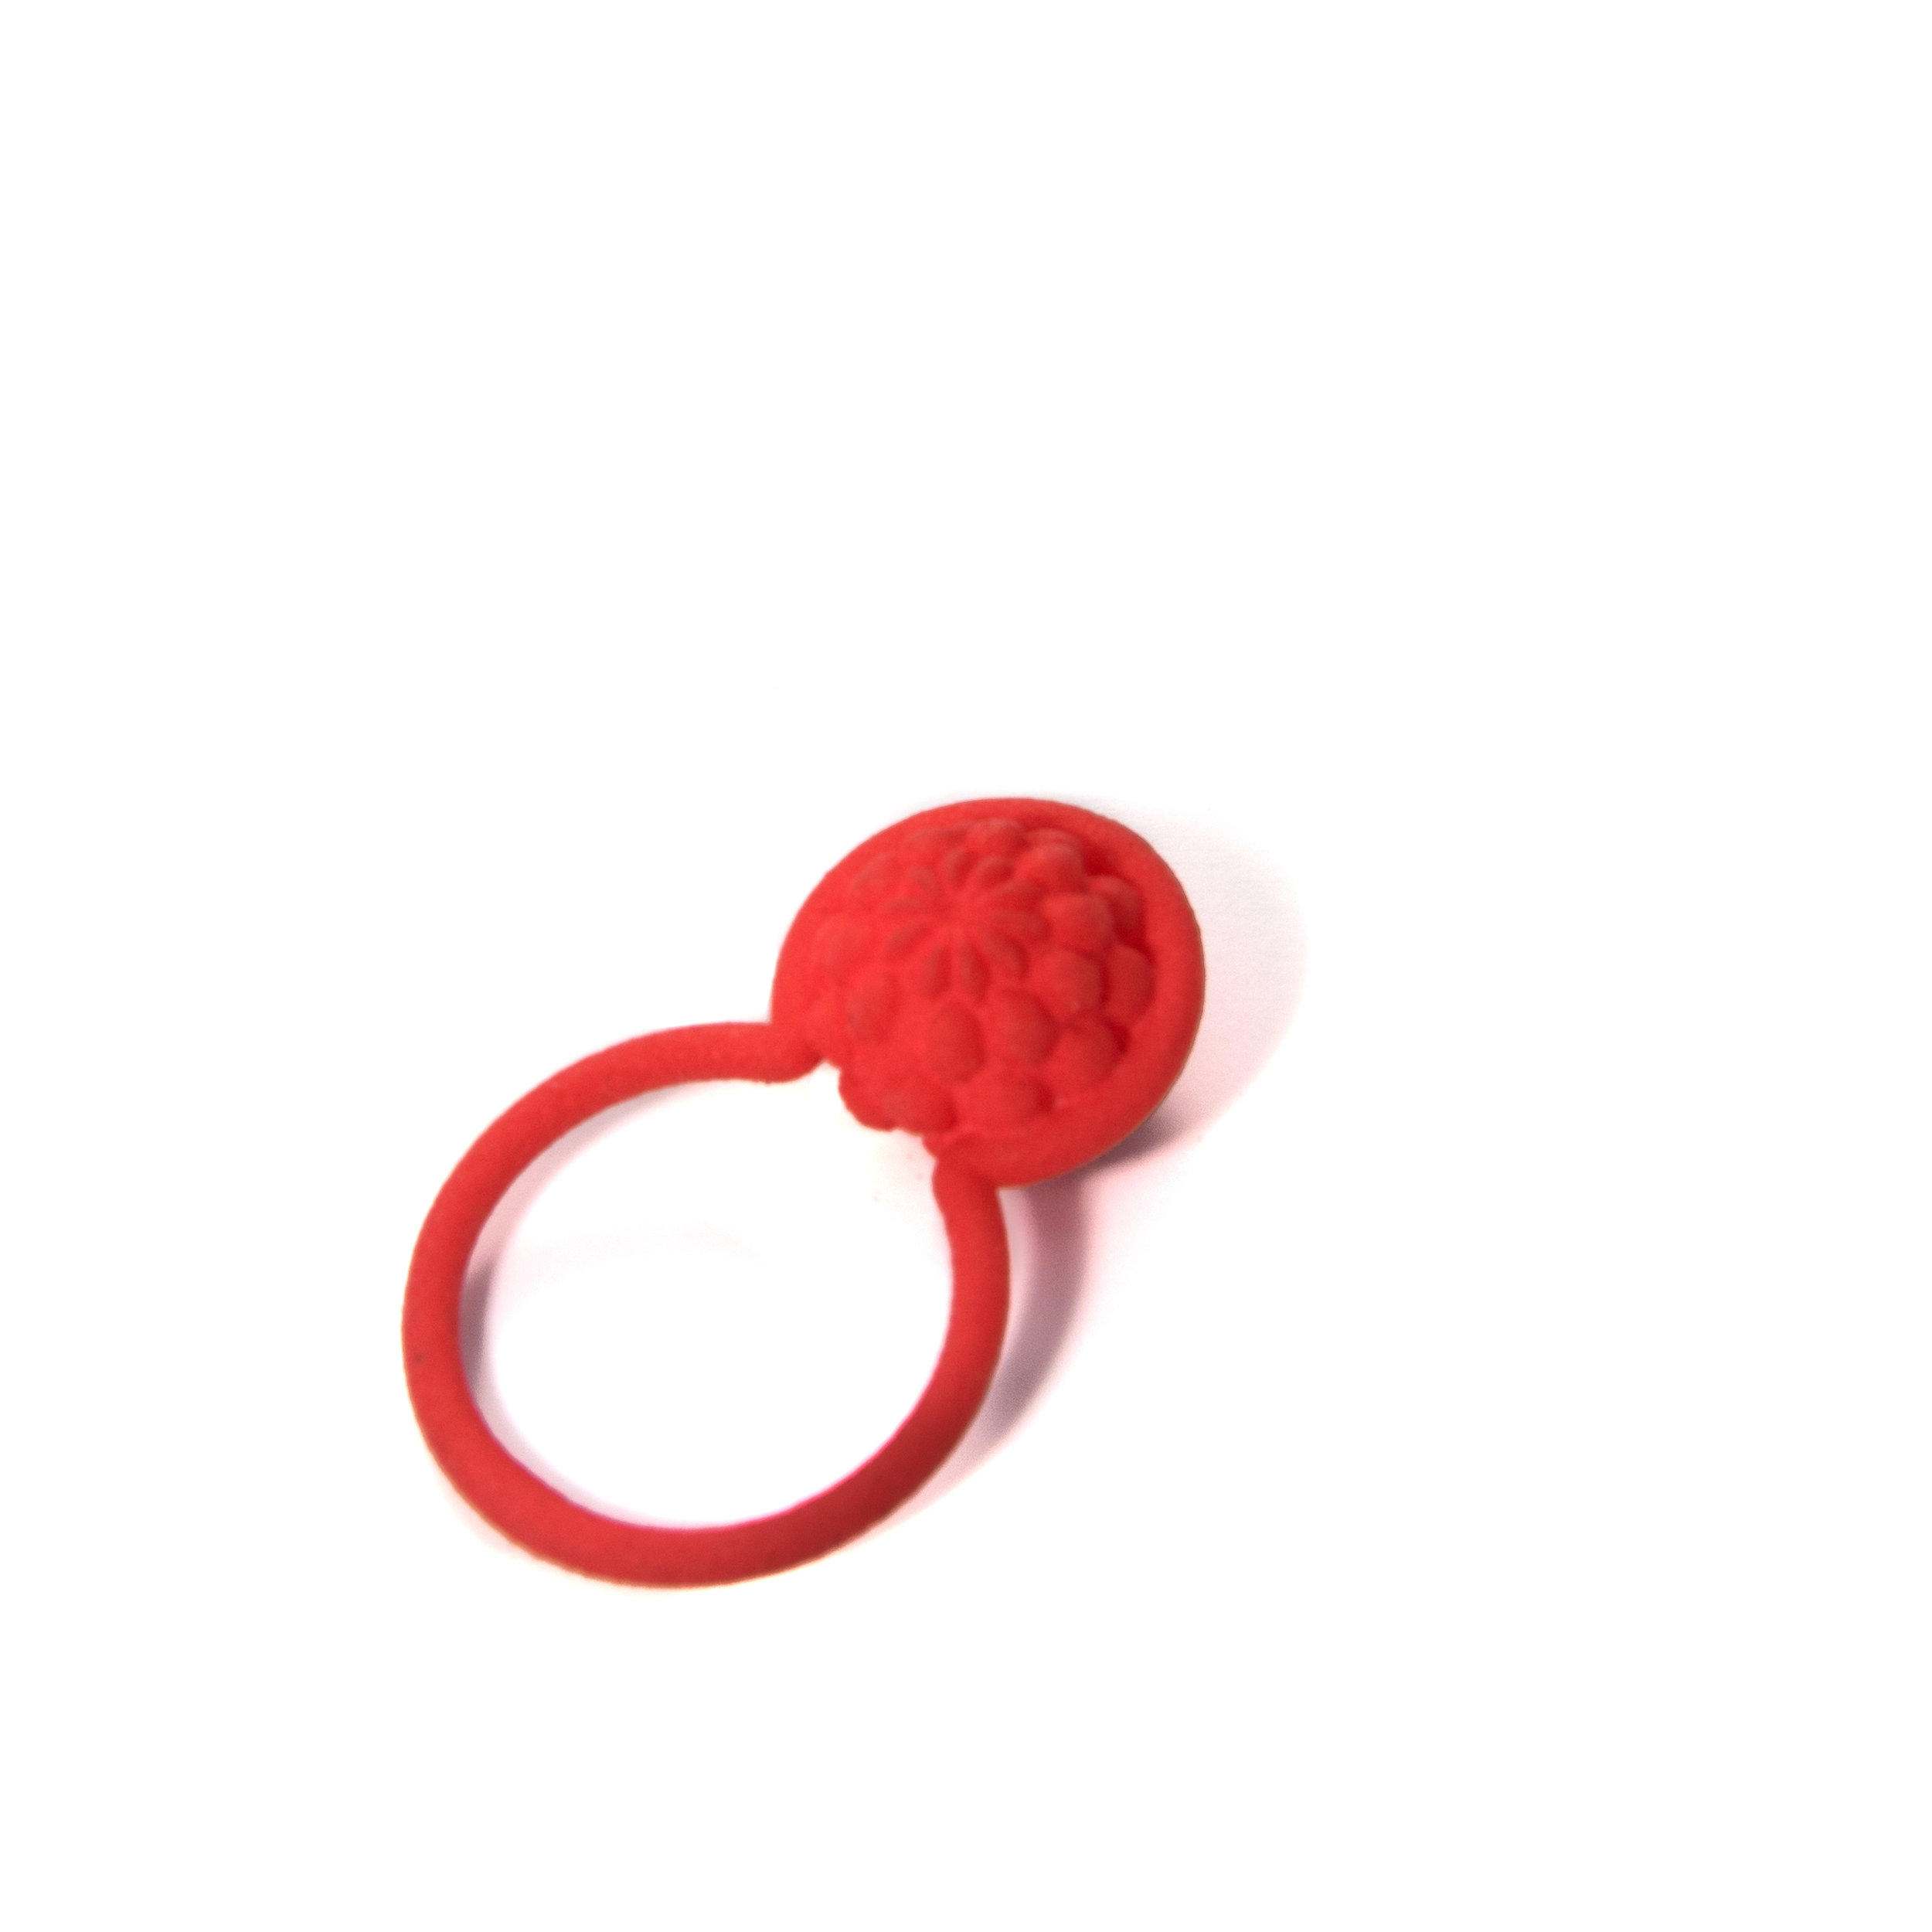 ring small red.jpg